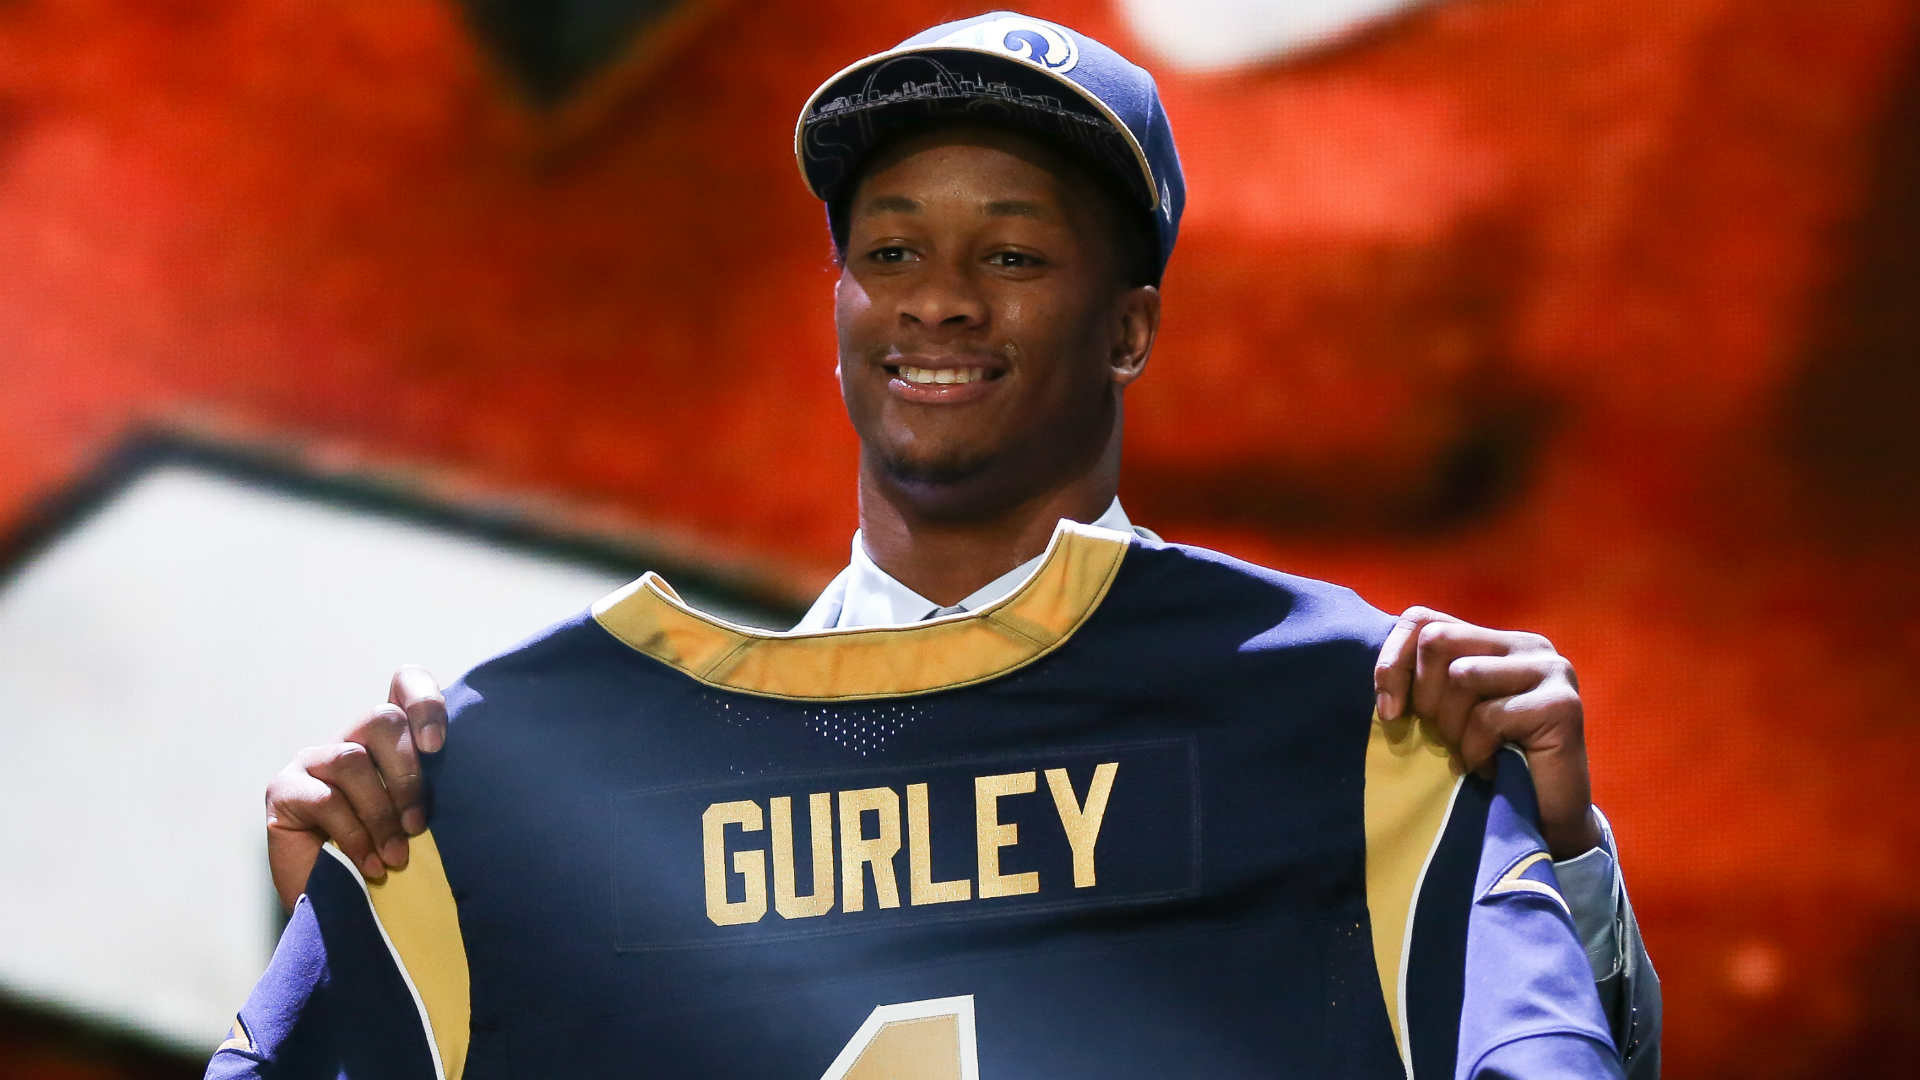 Todd Gurley may not be ready for Rams' season opener   NFL   Sporting News